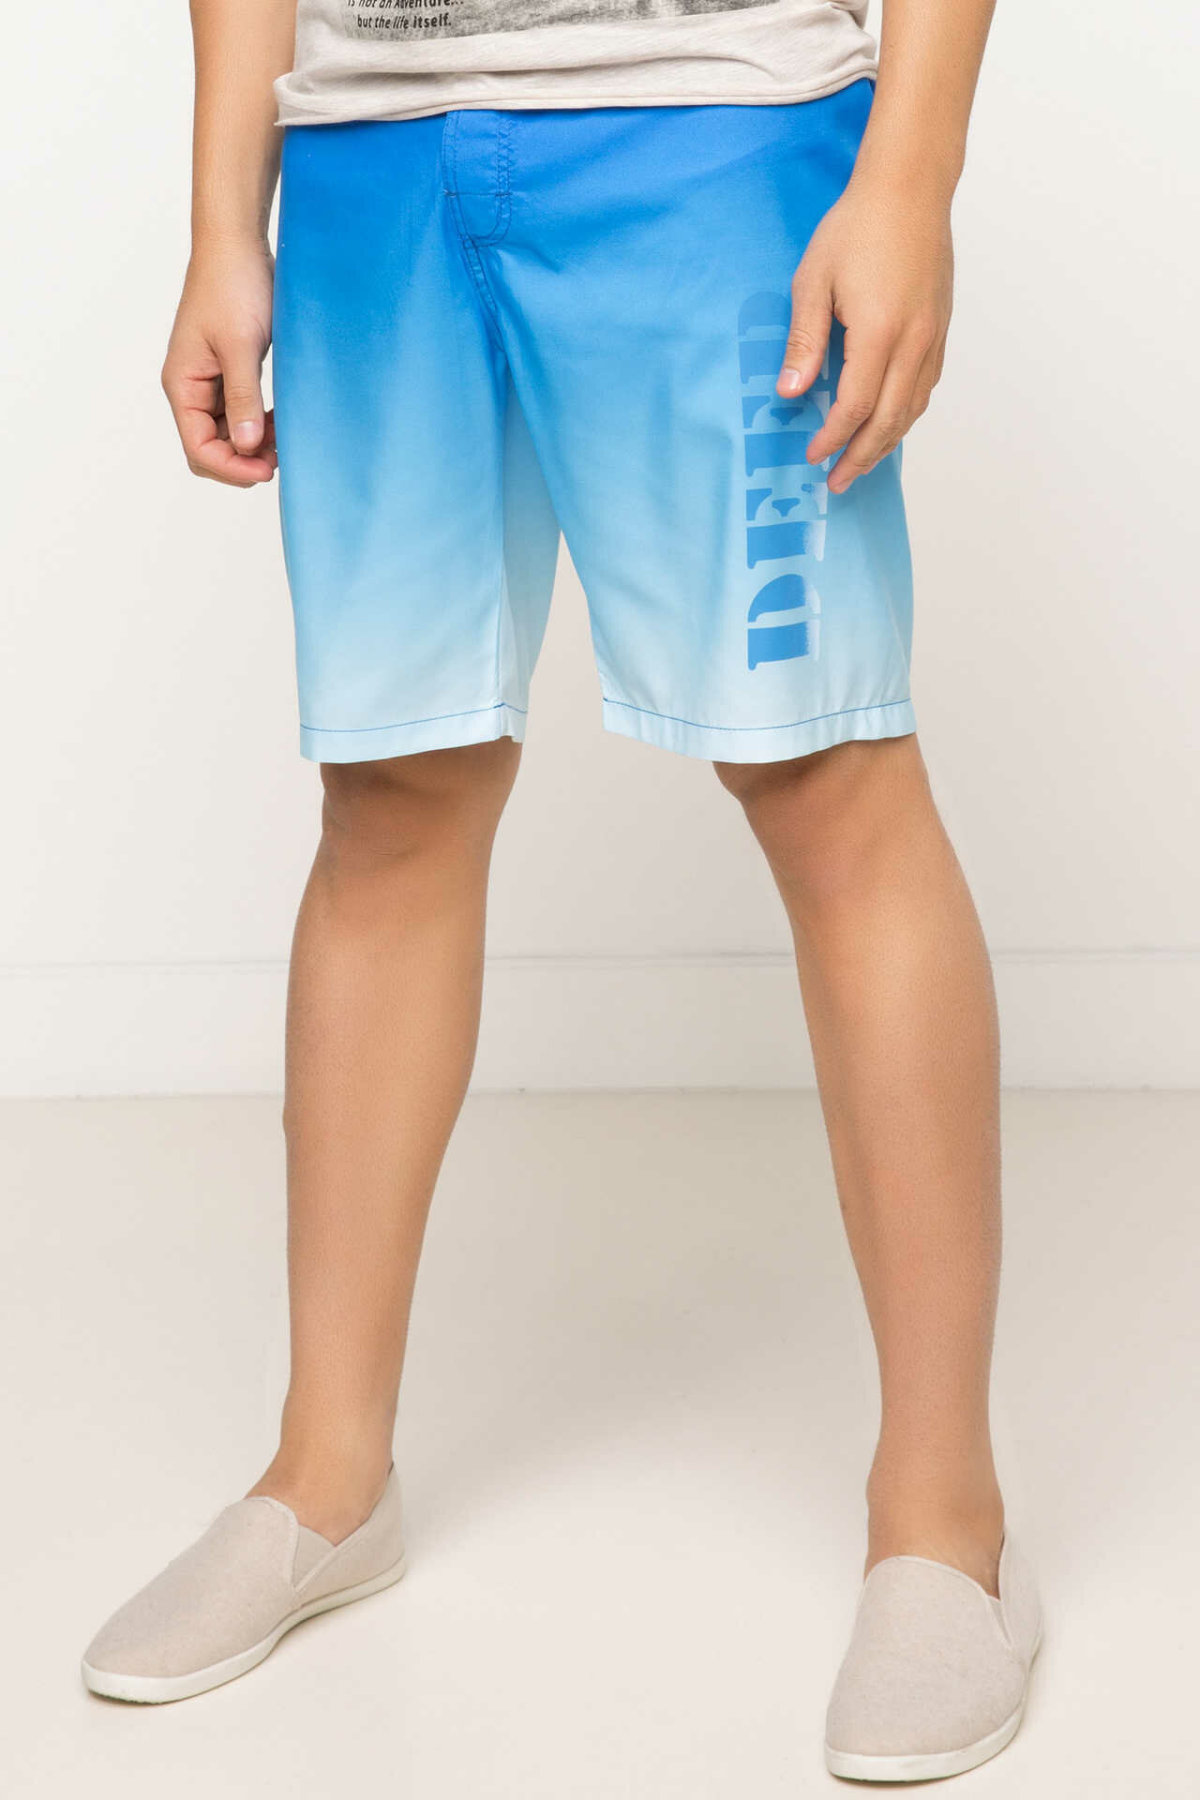 DeFacto Summer Man Woven Swimming Short Male Casual Gradient Blue Short Pants Loose Beach Swim New -G7322AZ17HS